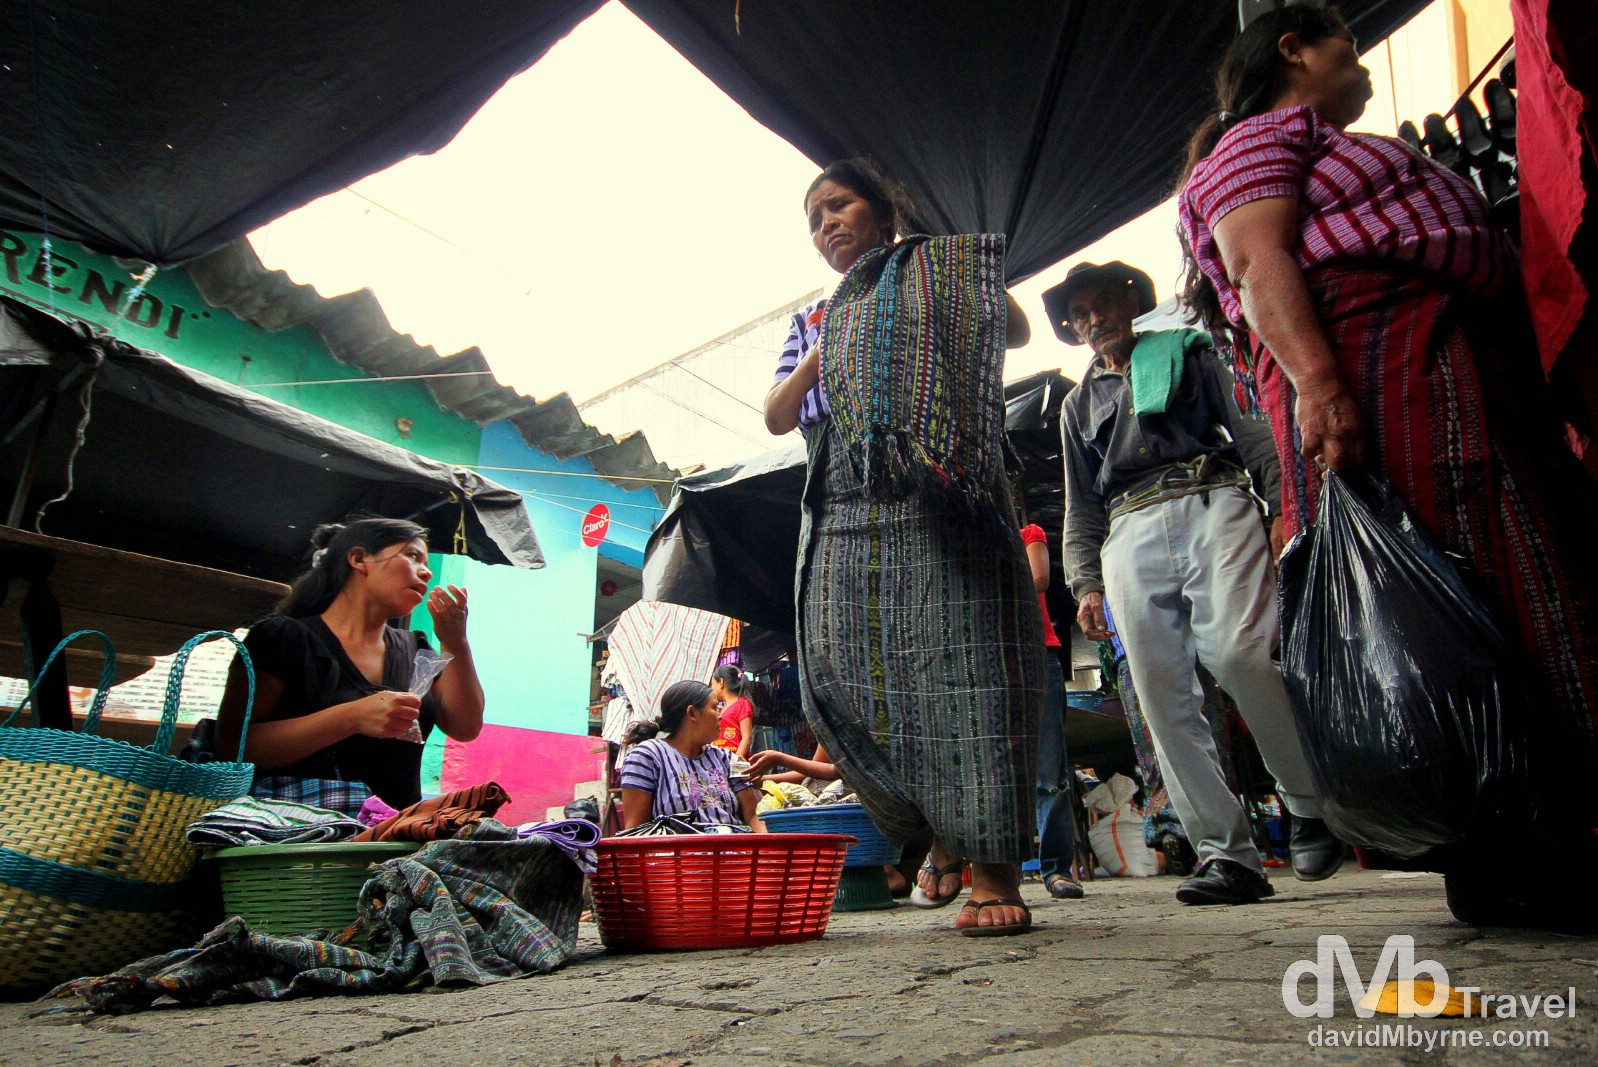 Market day in Santiago Atitlan, Guatemala. May 24th 2013.